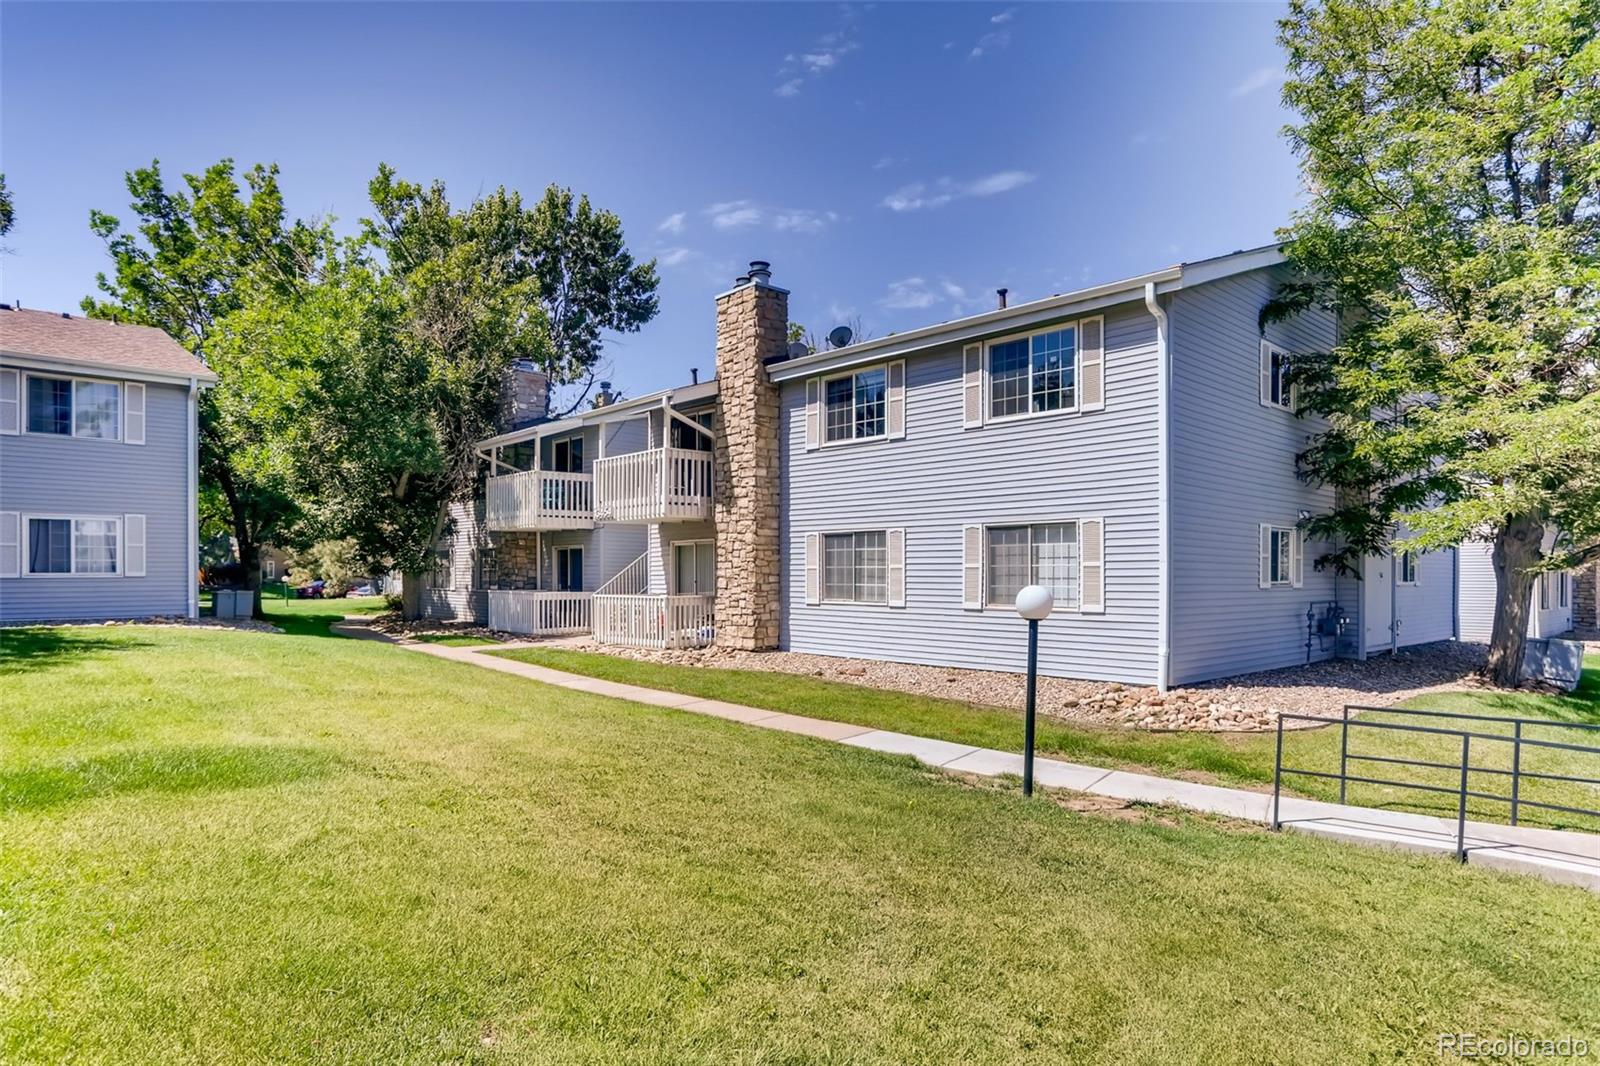 Welcome home to this wonderful ground floor 2 bedroom, 2 bathroom beauty! With all new paint and flooring, this condo is sure to catch your eye. With 2 large bedrooms and a full and 3/4 bathroom this condo is convenient for all. Located off highway 225 next to Jewell Wetlands Park and 15 minutes from Cherry Creek Reservoir, the location is outdoorsman's dream! With a 1 car detached garage and 1 reserved space, this is the perfect starter home. Once you step inside, you will fall in love with this captivating home!